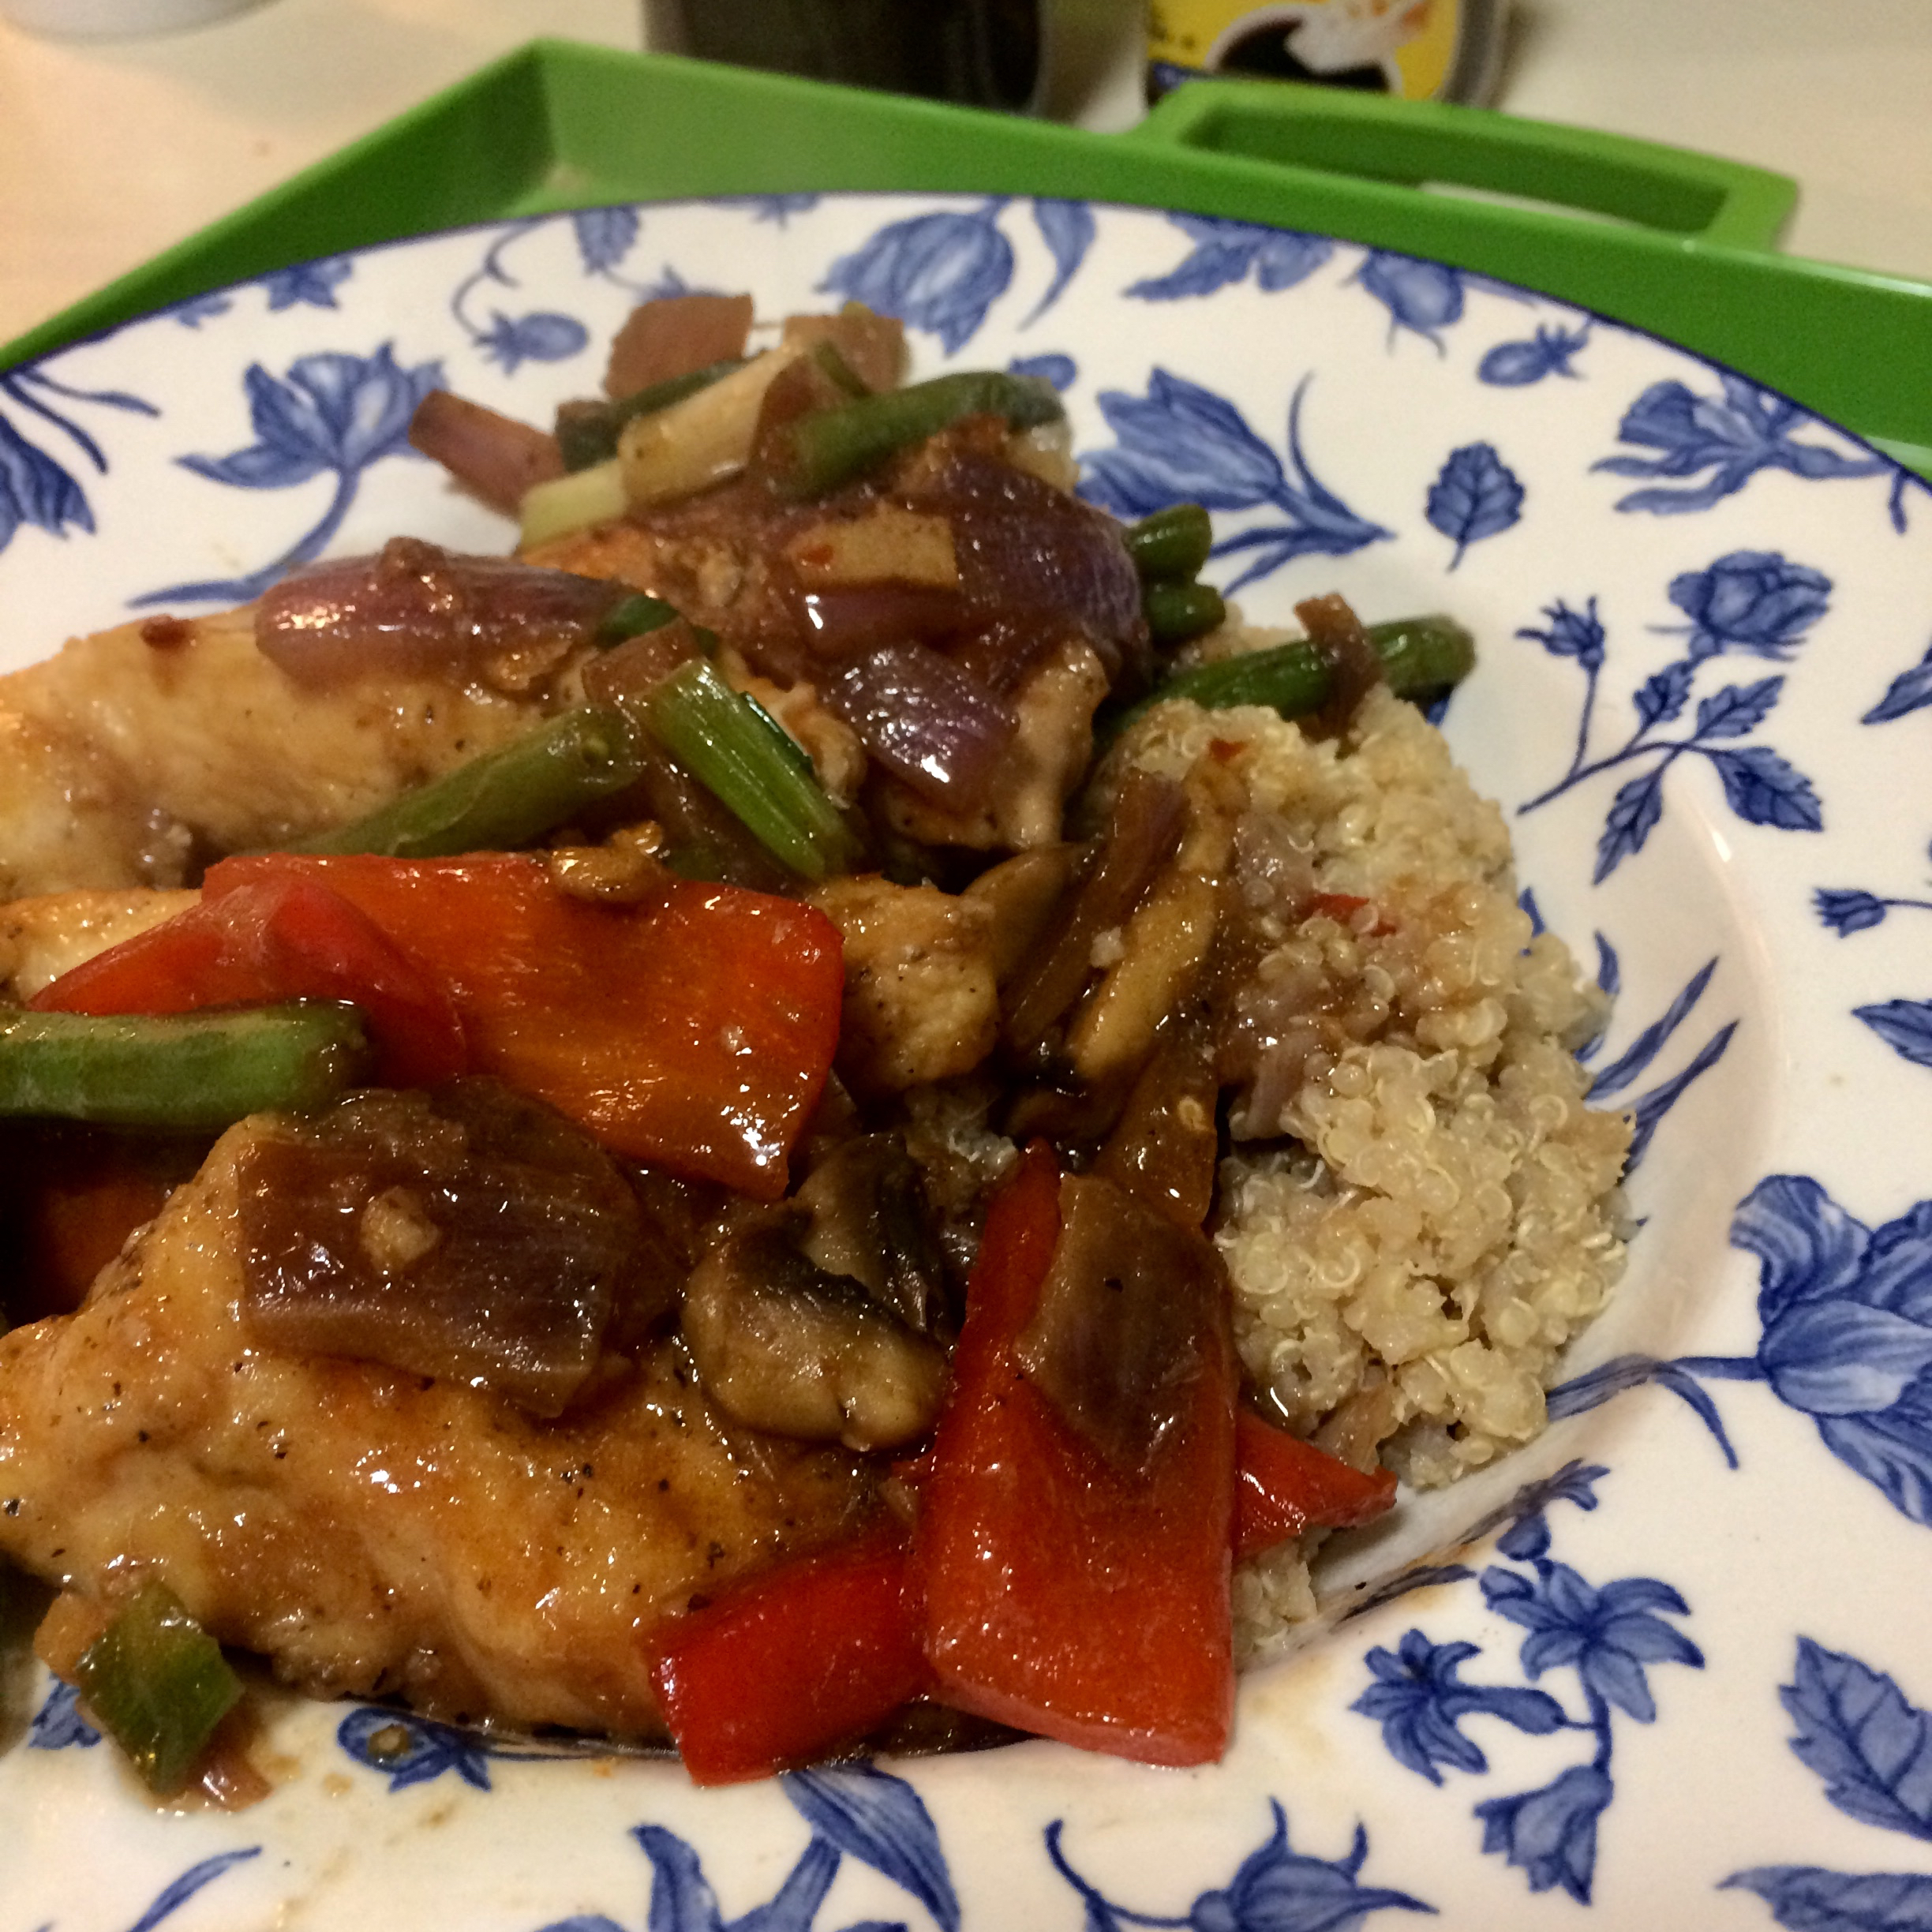 Chicken Vegetable Stir Fry